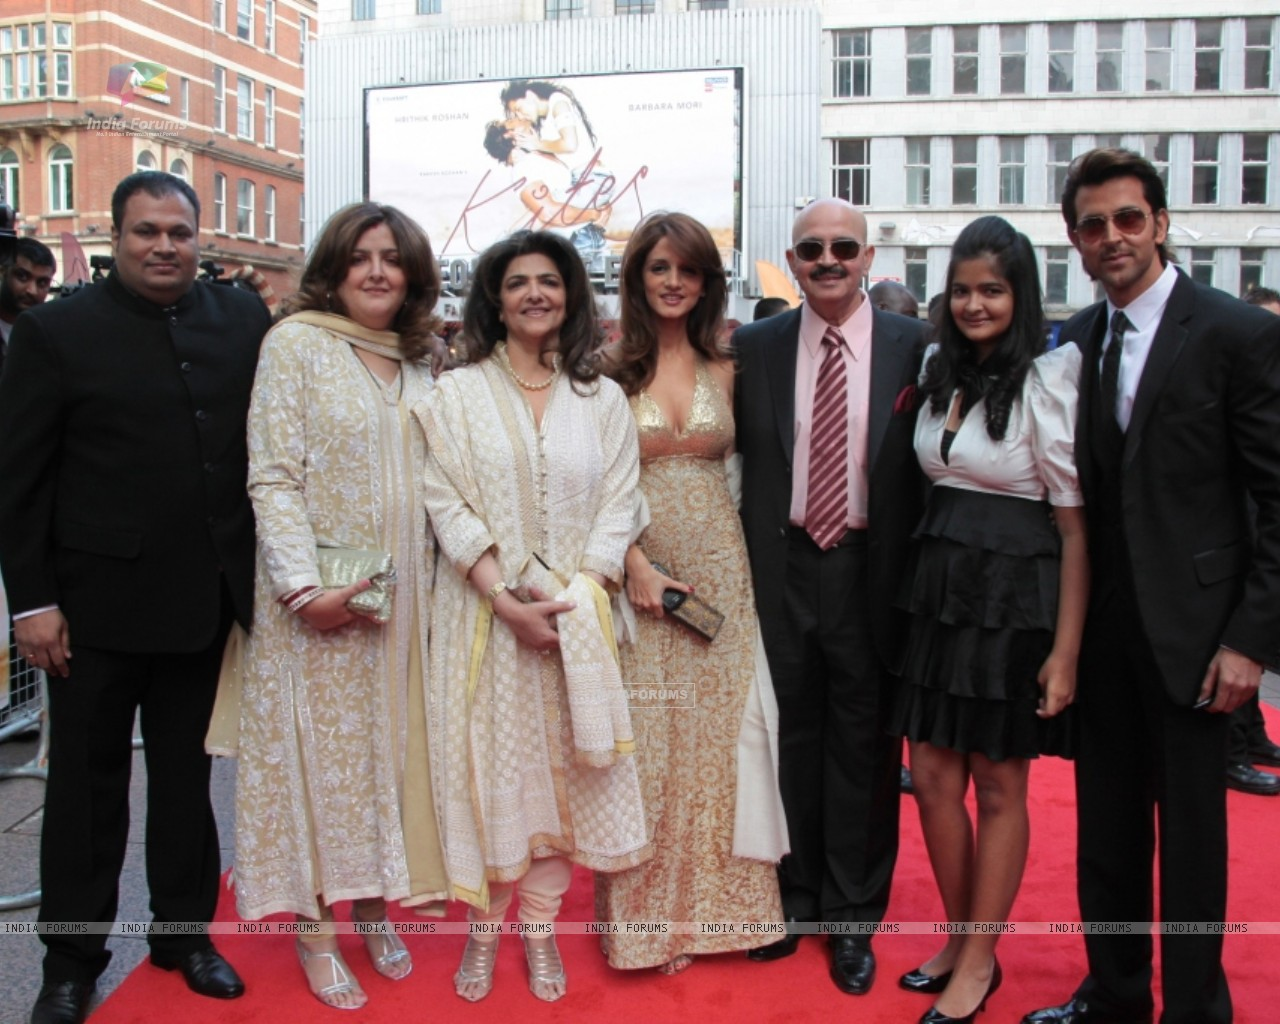 Suzanne Roshan, Rakesh Roshan and Hrithik Roshan attends the European premiere of ''Kites'' at Odeon West End in London (87753) size:1280x1024